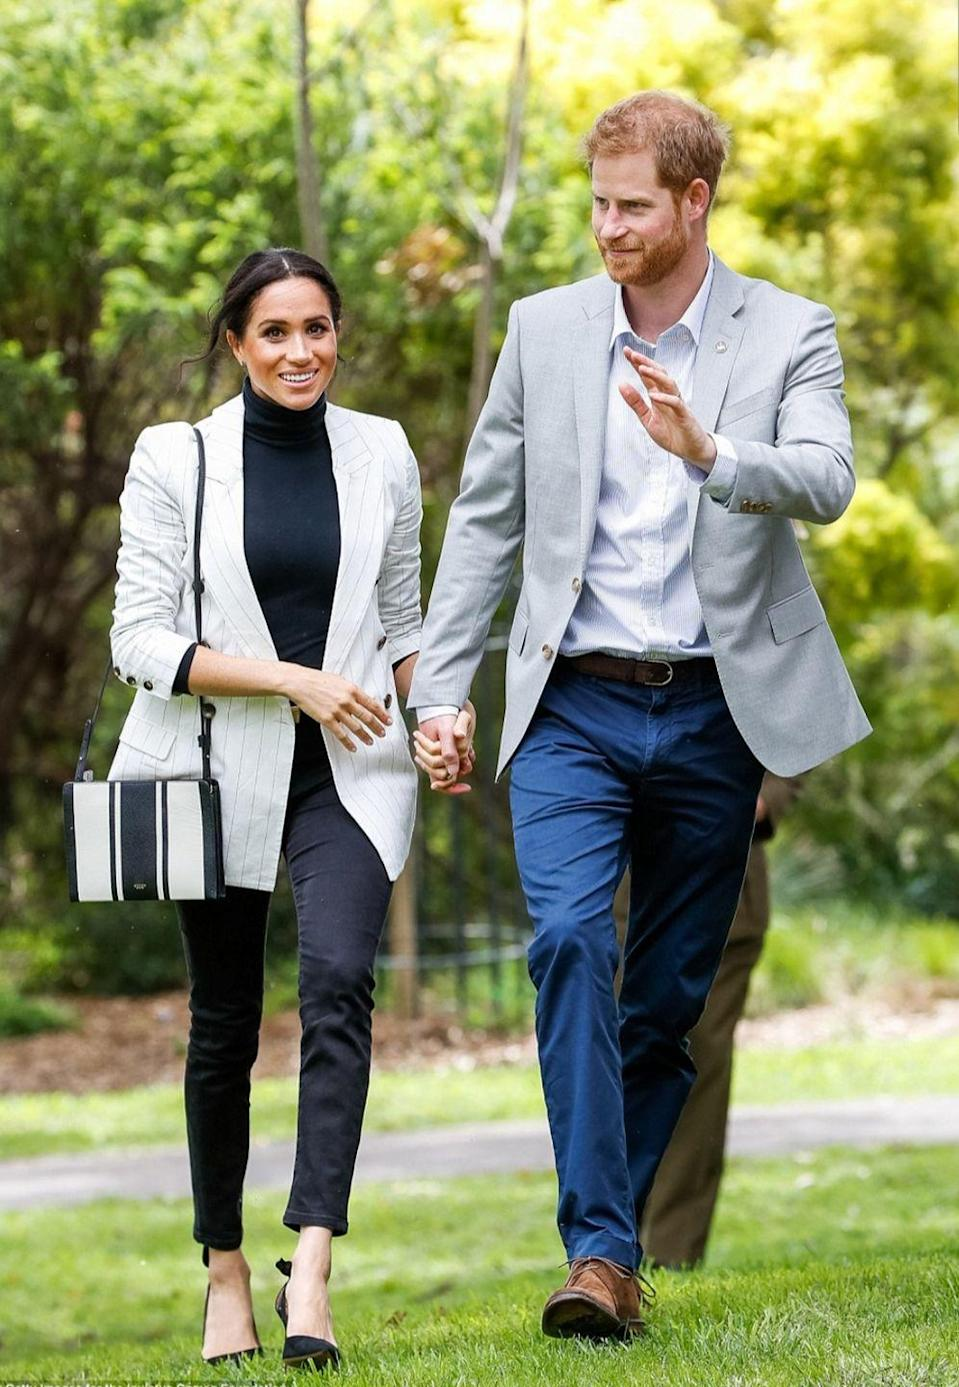 "<p>On Sunday, Meghan and Harry <a href=""https://www.townandcountrymag.com/society/tradition/g23940939/meghan-markle-prince-harry-invictus-games-sydney-2018-royal-tour-photo-day-6/"" rel=""nofollow noopener"" target=""_blank"" data-ylk=""slk:attended a reception hosted by the Prime Minister"" class=""link rapid-noclick-resp"">attended a reception hosted by the Prime Minister</a> of Australia. The Duchess wore a blazer by L'Agence with a black turtle neck and black jeans by <a href=""https://outlanddenim.com/products/harriet-in-black"" rel=""nofollow noopener"" target=""_blank"" data-ylk=""slk:Outland Denim"" class=""link rapid-noclick-resp"">Outland Denim</a> for the event. She accessorized with Aquazzura Deneuve Pumps and a crossbody bag by Oroton.<br></p><p><a class=""link rapid-noclick-resp"" href=""https://go.redirectingat.com?id=74968X1596630&url=https%3A%2F%2Fwww.harveynichols.com%2Fint%2Fbrand%2Faquazzurra-kids%2F273504-deneuve-black-suede-pumps%2Fp3169415%2F&sref=https%3A%2F%2Fwww.townandcountrymag.com%2Fstyle%2Ffashion-trends%2Fg3272%2Fmeghan-markle-preppy-style%2F"" rel=""nofollow noopener"" target=""_blank"" data-ylk=""slk:SHOP NOW"">SHOP NOW</a> <em>Aquazzura Deneuve Pumps, $550.69</em></p>"